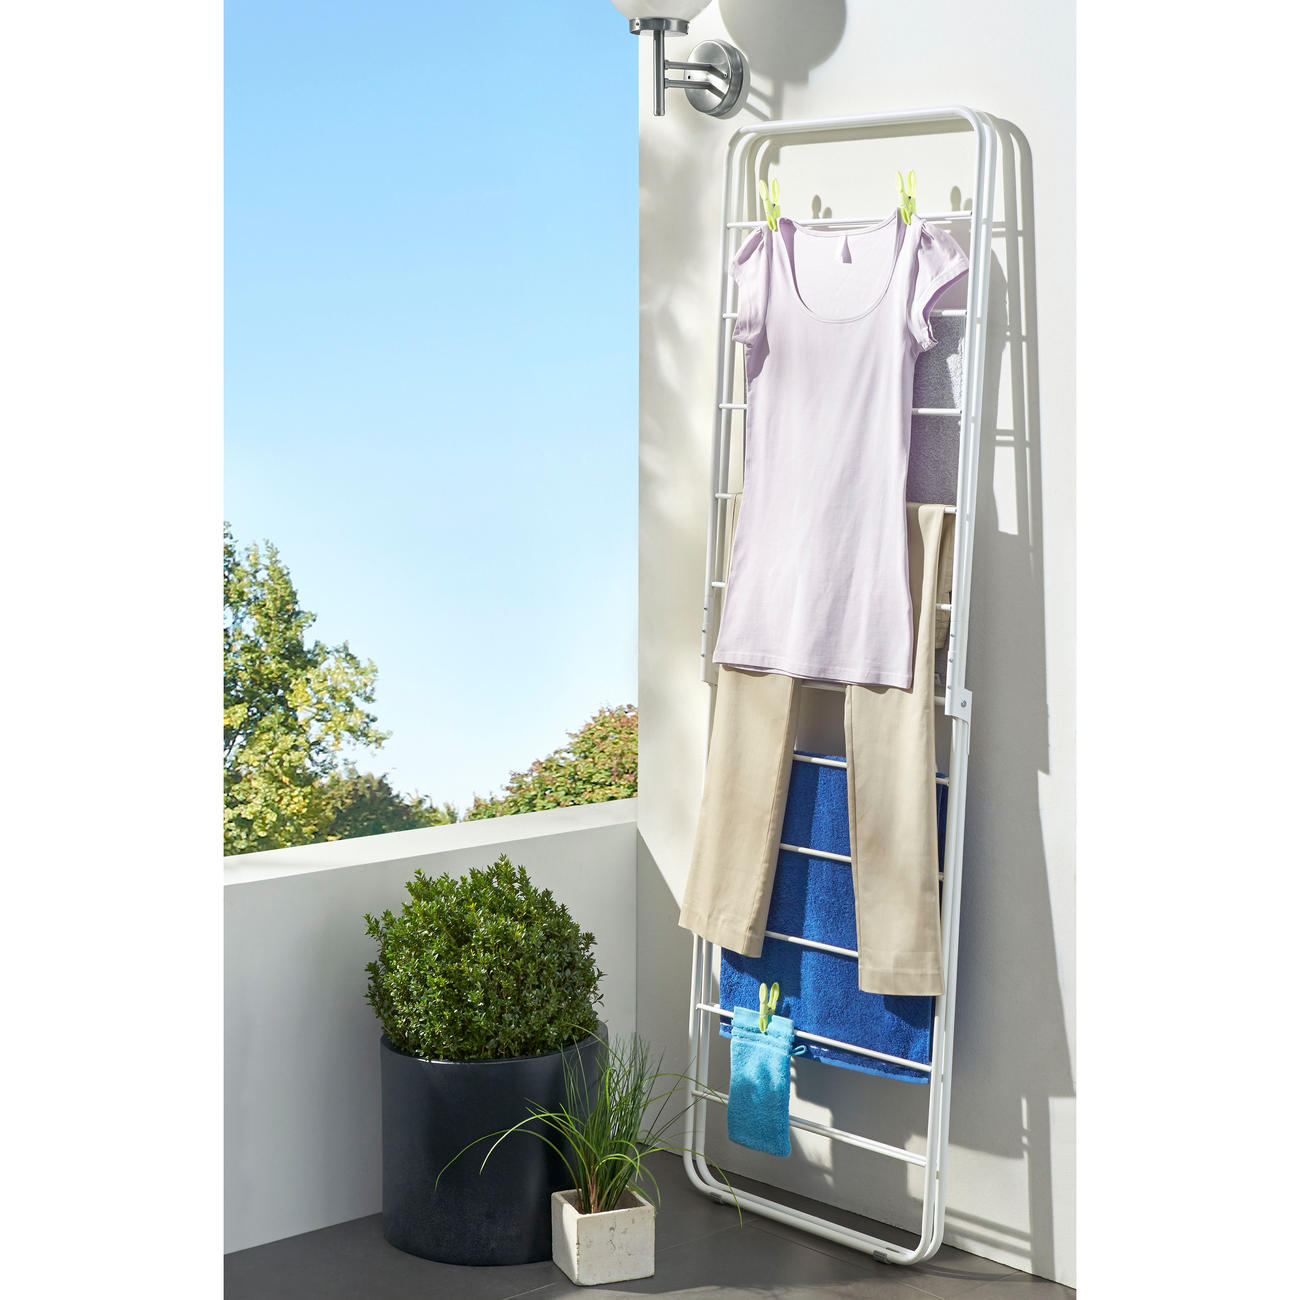 buy x dryer clothes airer 3 year product guarantee. Black Bedroom Furniture Sets. Home Design Ideas